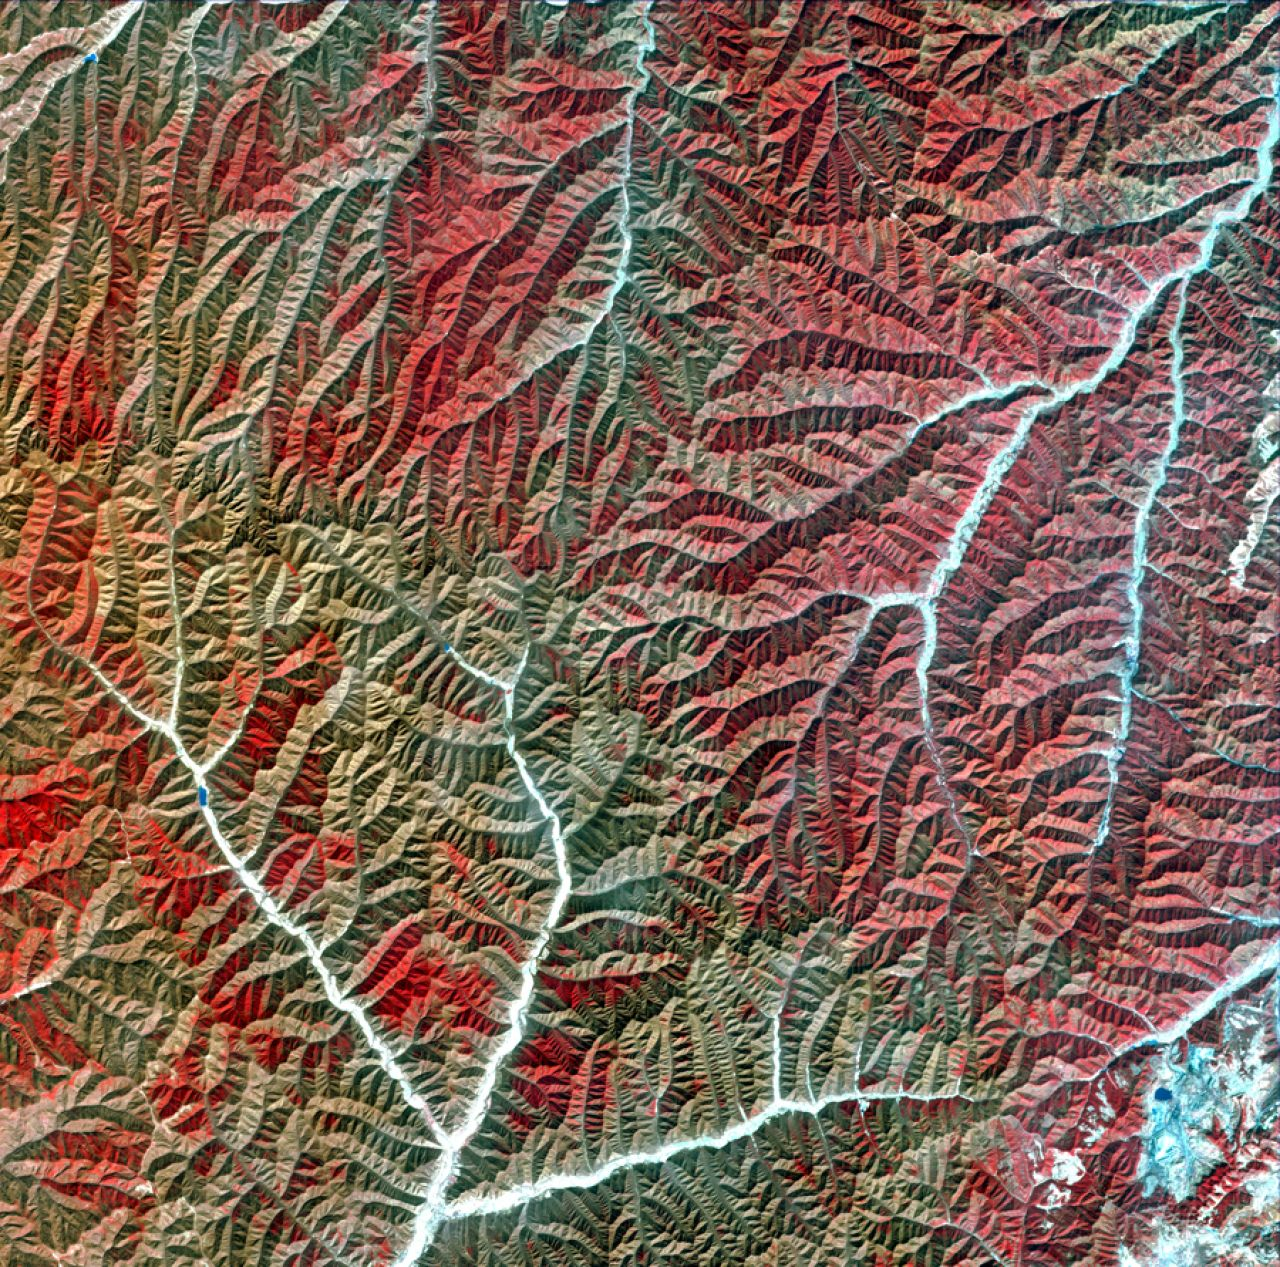 Vegetation and dried rivers of a mountain range in Gansu province.